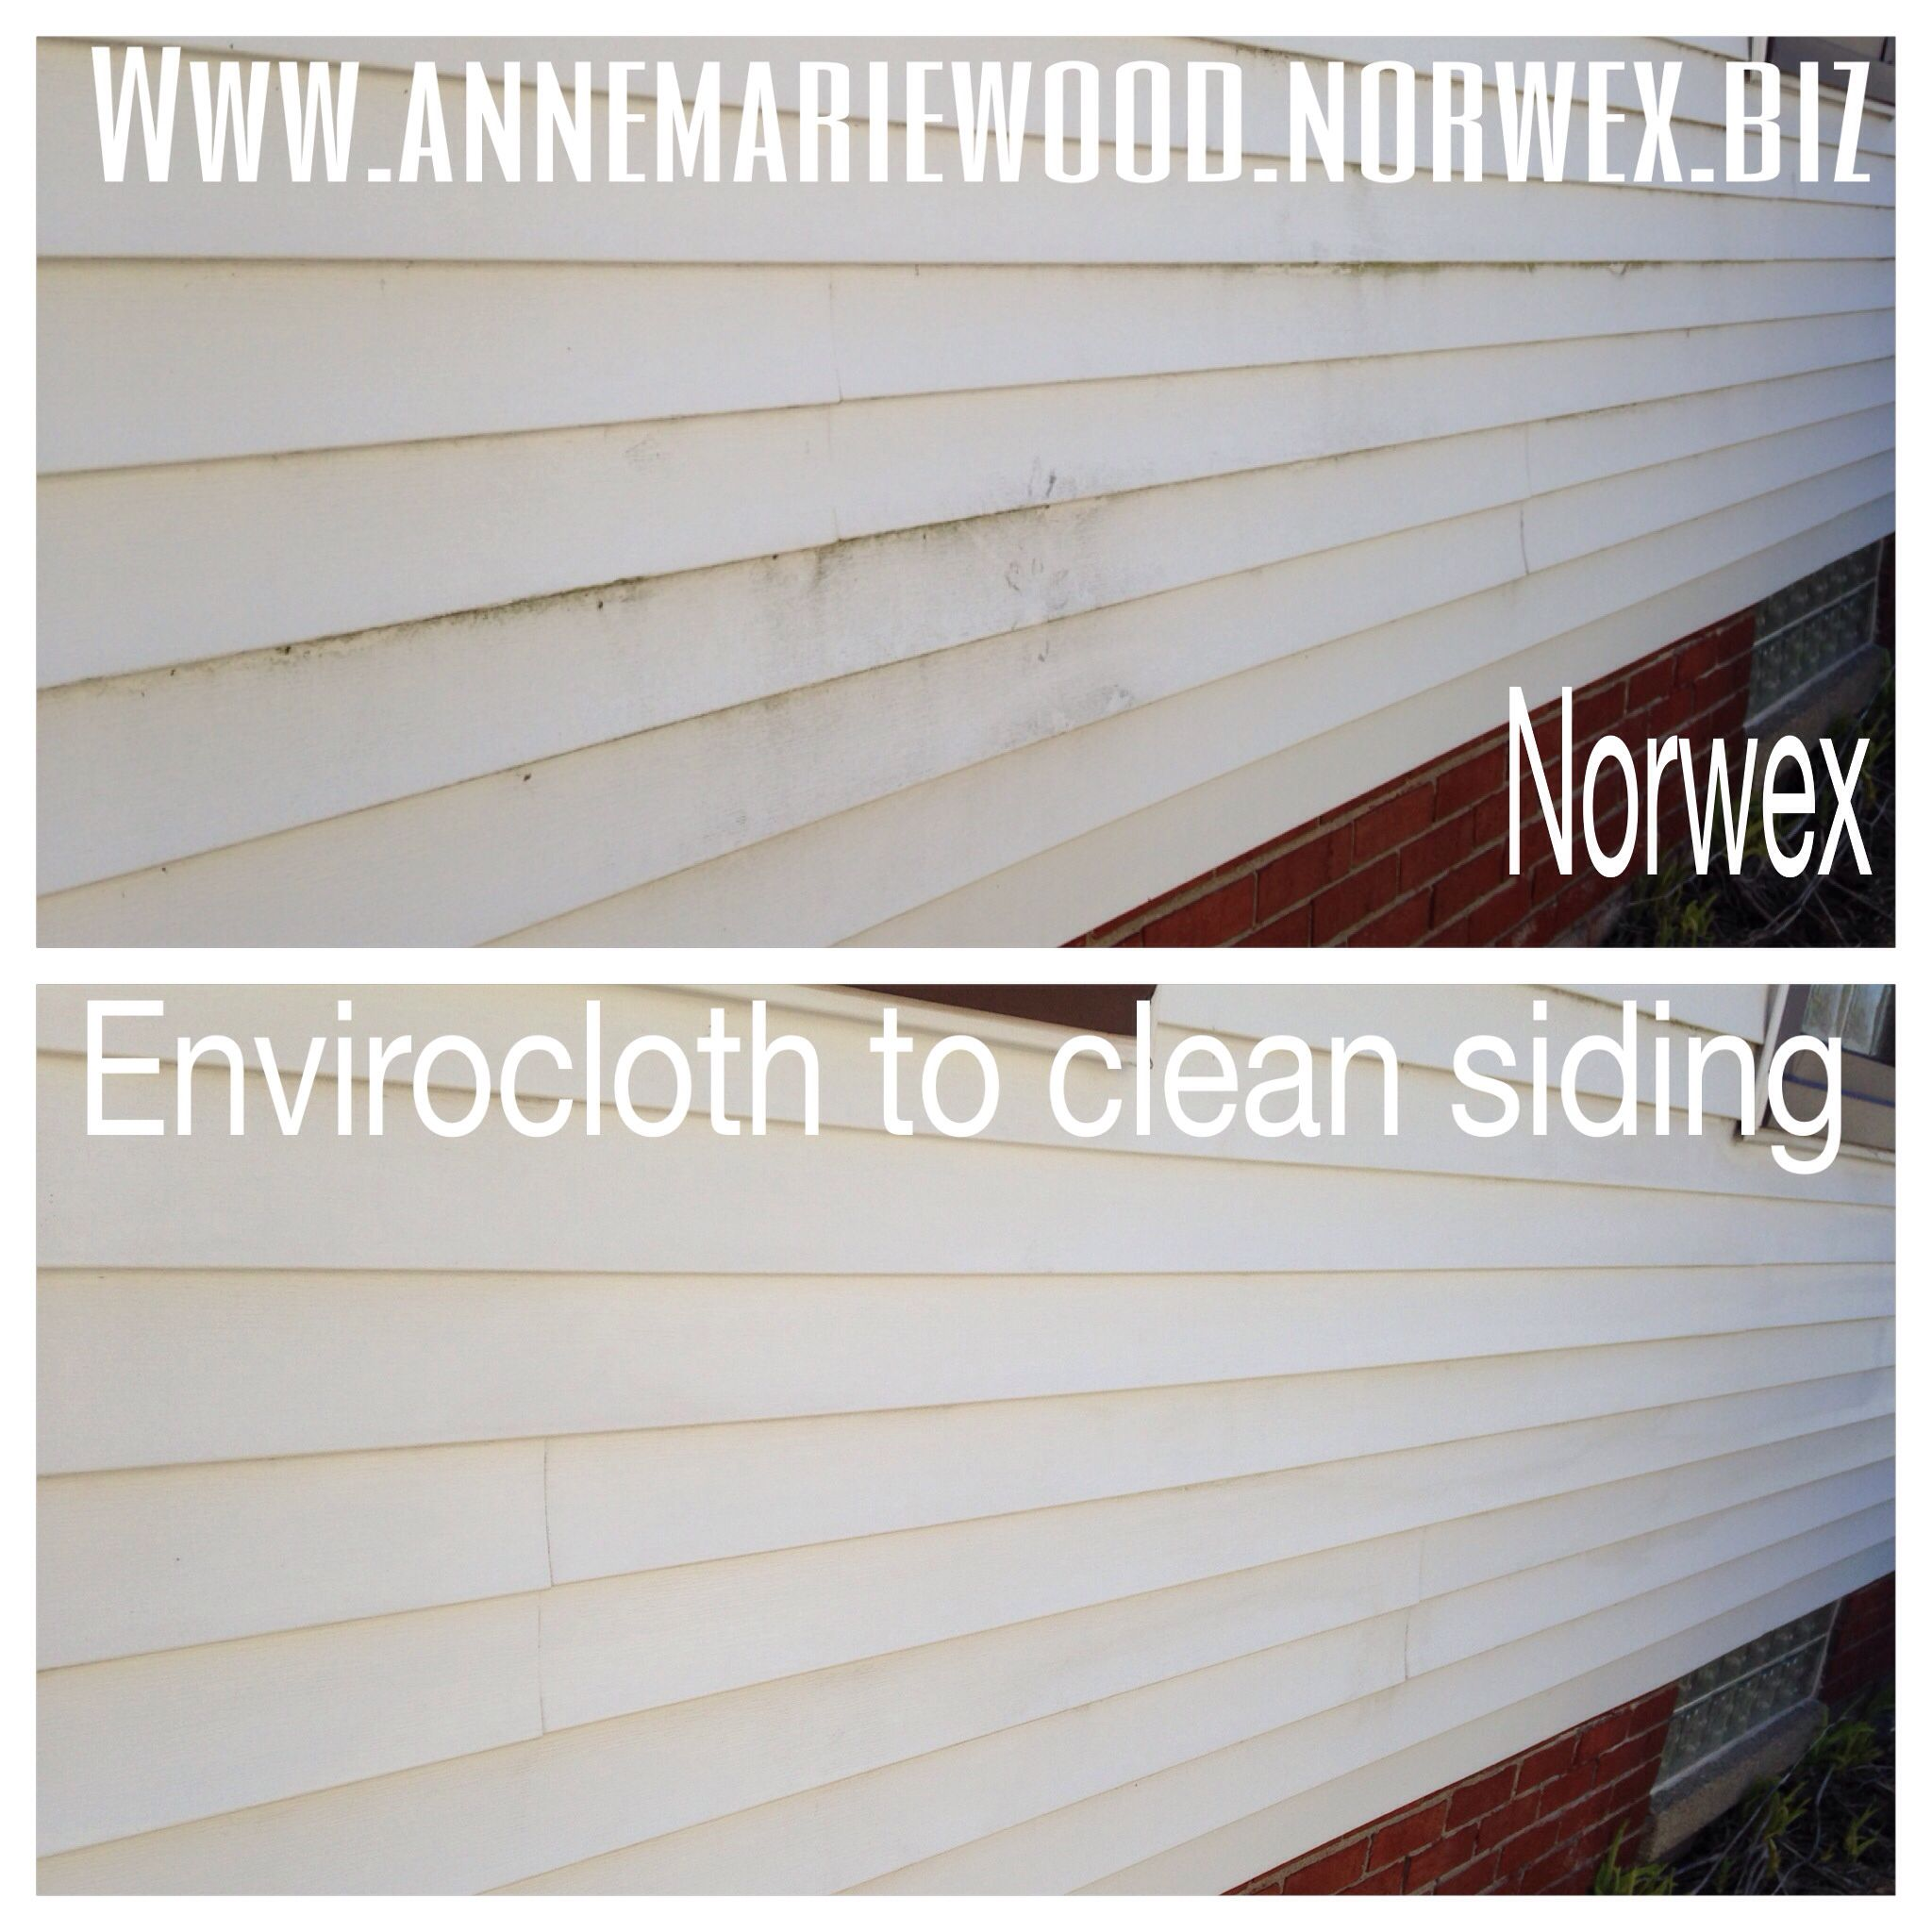 Norwex Envirocloth To Clean My Siding Easy Spring Cleaning Norwex Norwex Envirocloth Envirocloth